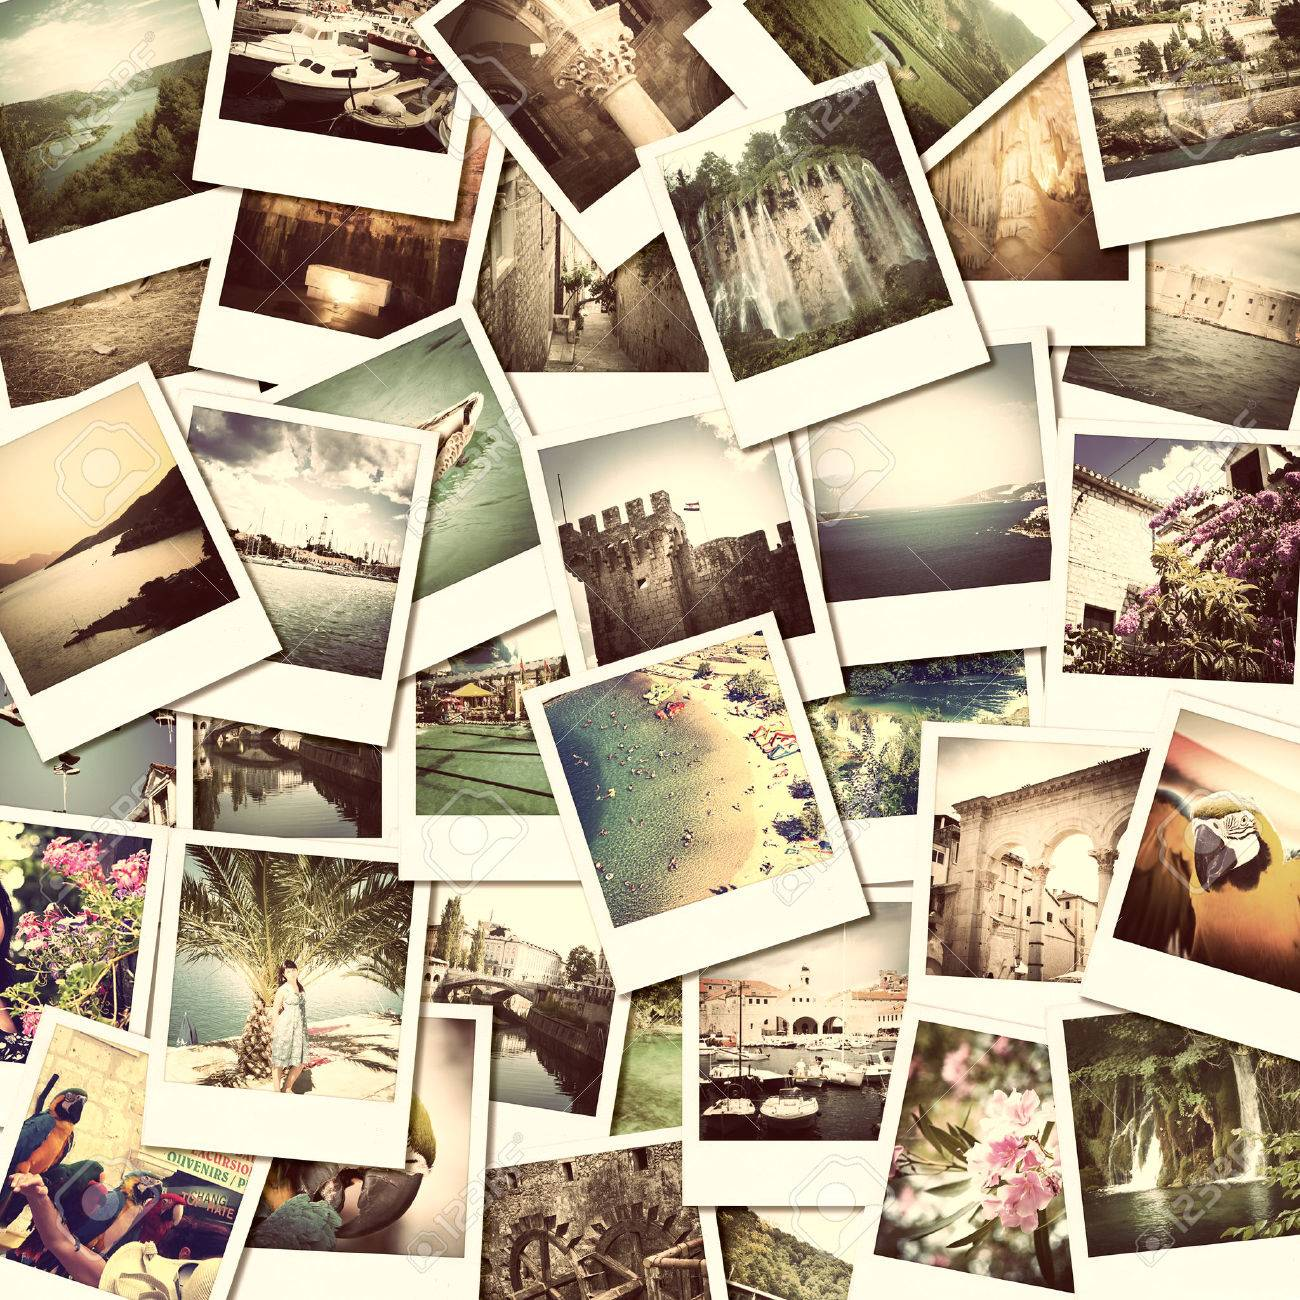 mosaic with pictures of different places and landscapes, snapshots uploaded to social networking services - 28321485